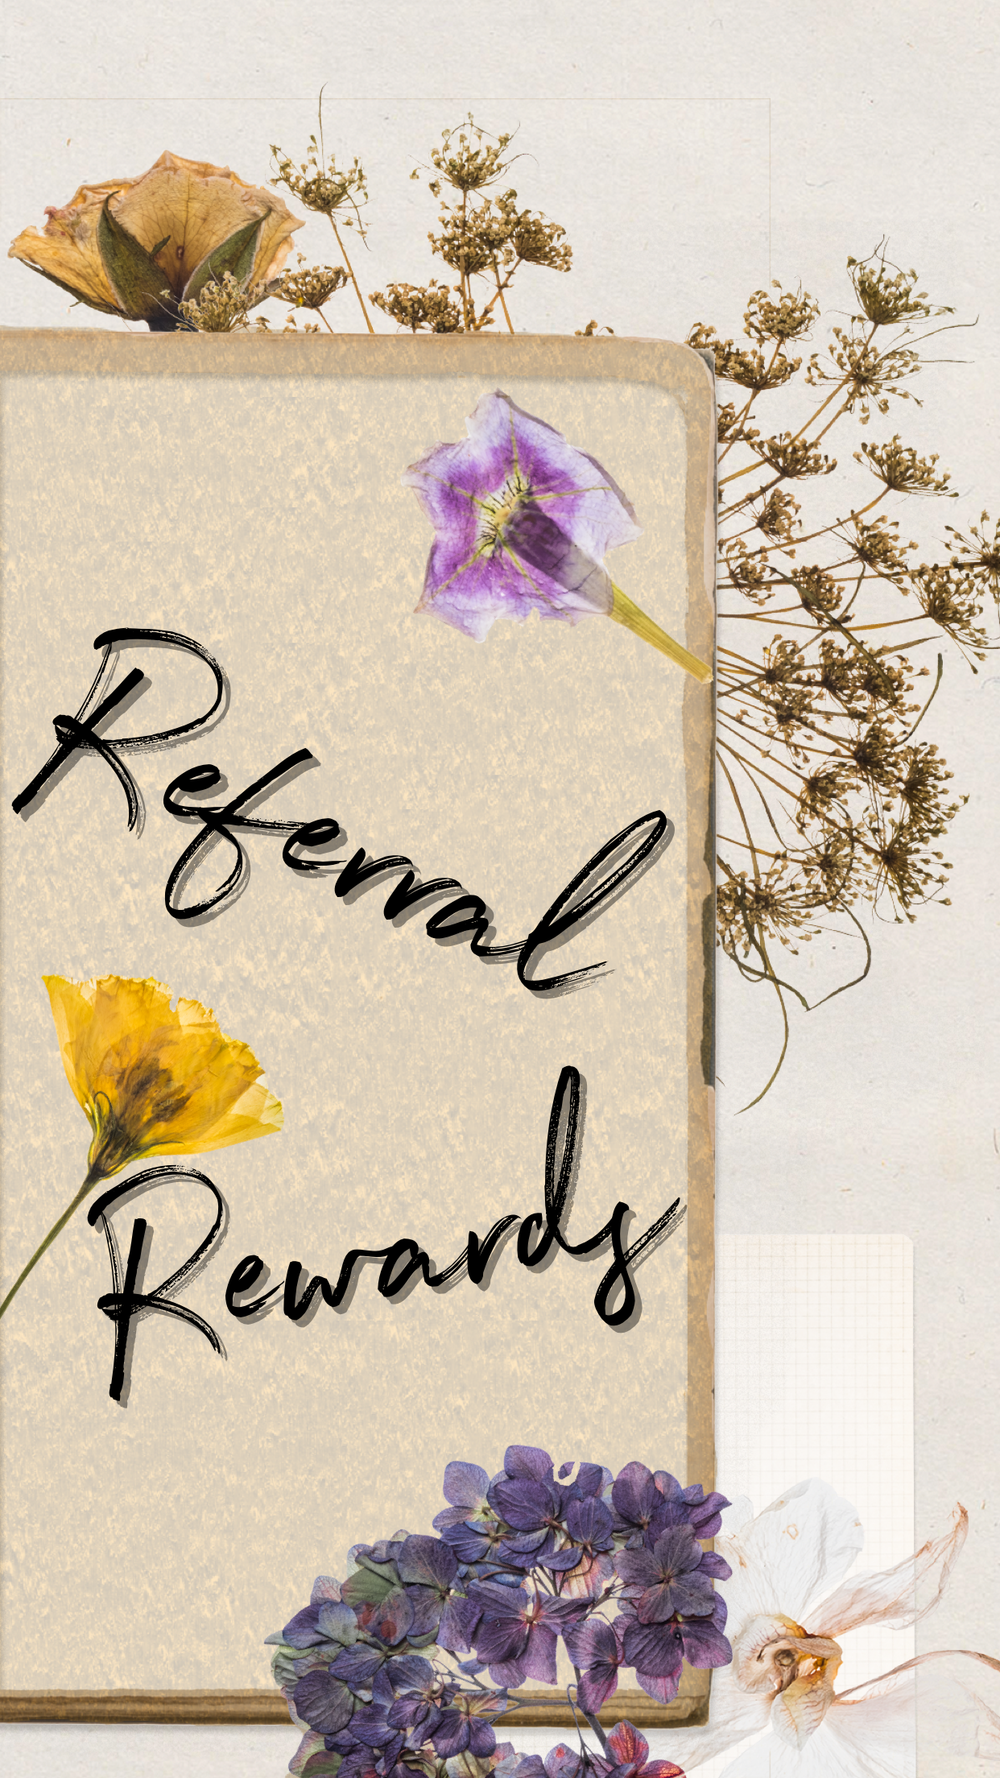 Referral Rewards! - I love Referrals so much that I want to reward you for it! 💰For every single person that you send to me, you will get $30 towards services. You will get a postcard in the mail, do not lose that card, treat it like cash and bring it to me next time you get your hair done.Your Referral will have the option of $20 off their first visit or my New Client Special! Feel free to give out my number, email or website! ☺️